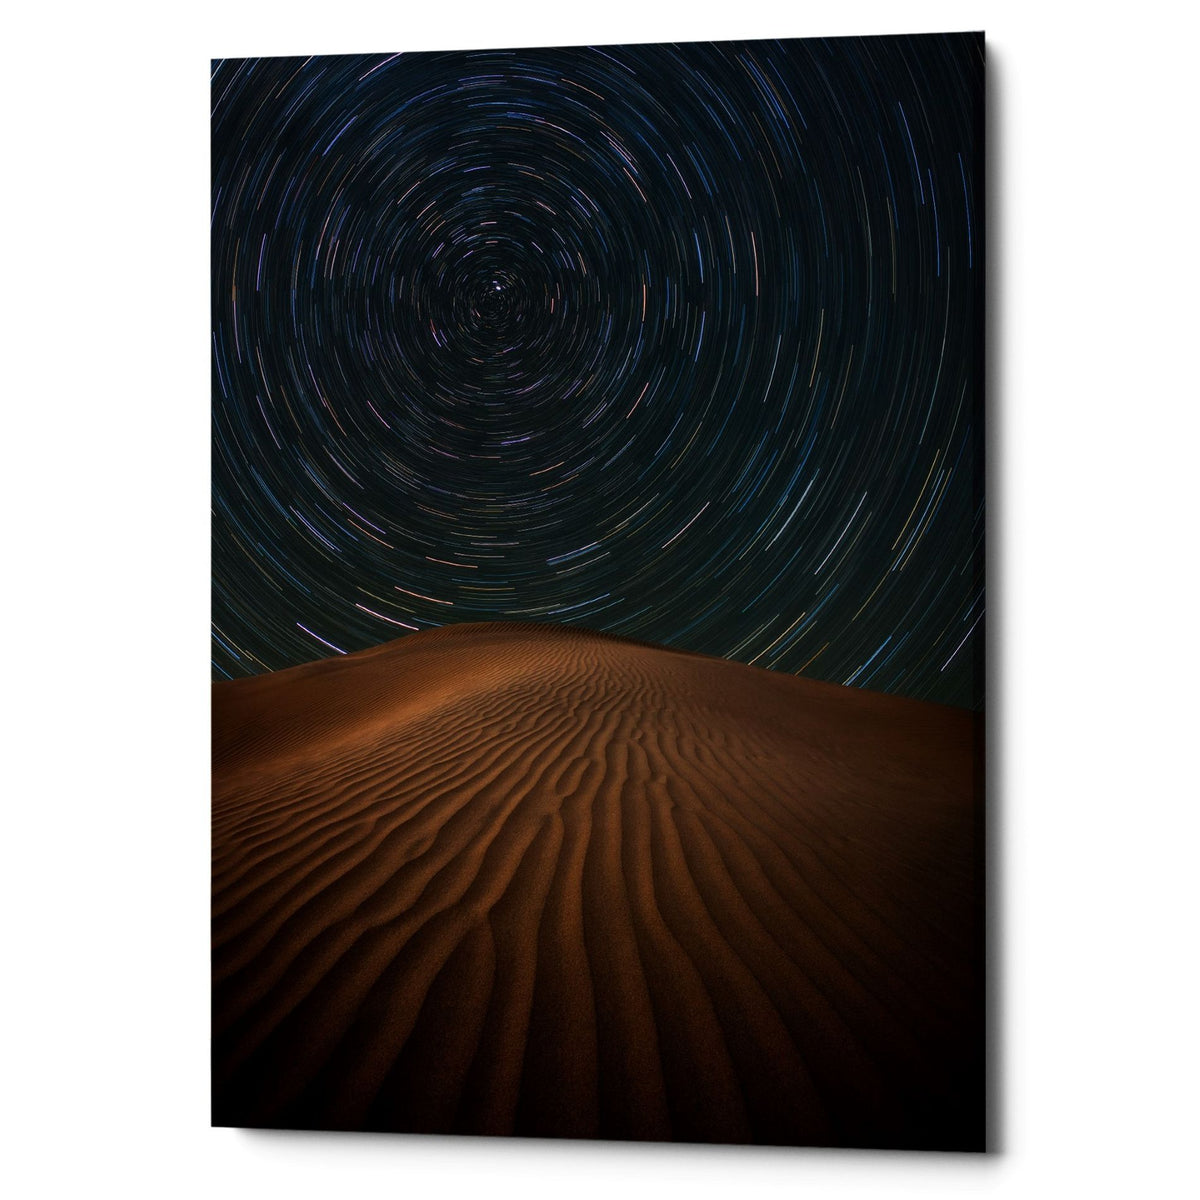 "Epic Graffiti ""Alone on The Dunes"" by Darren White, Giclee Canvas Wall Art"